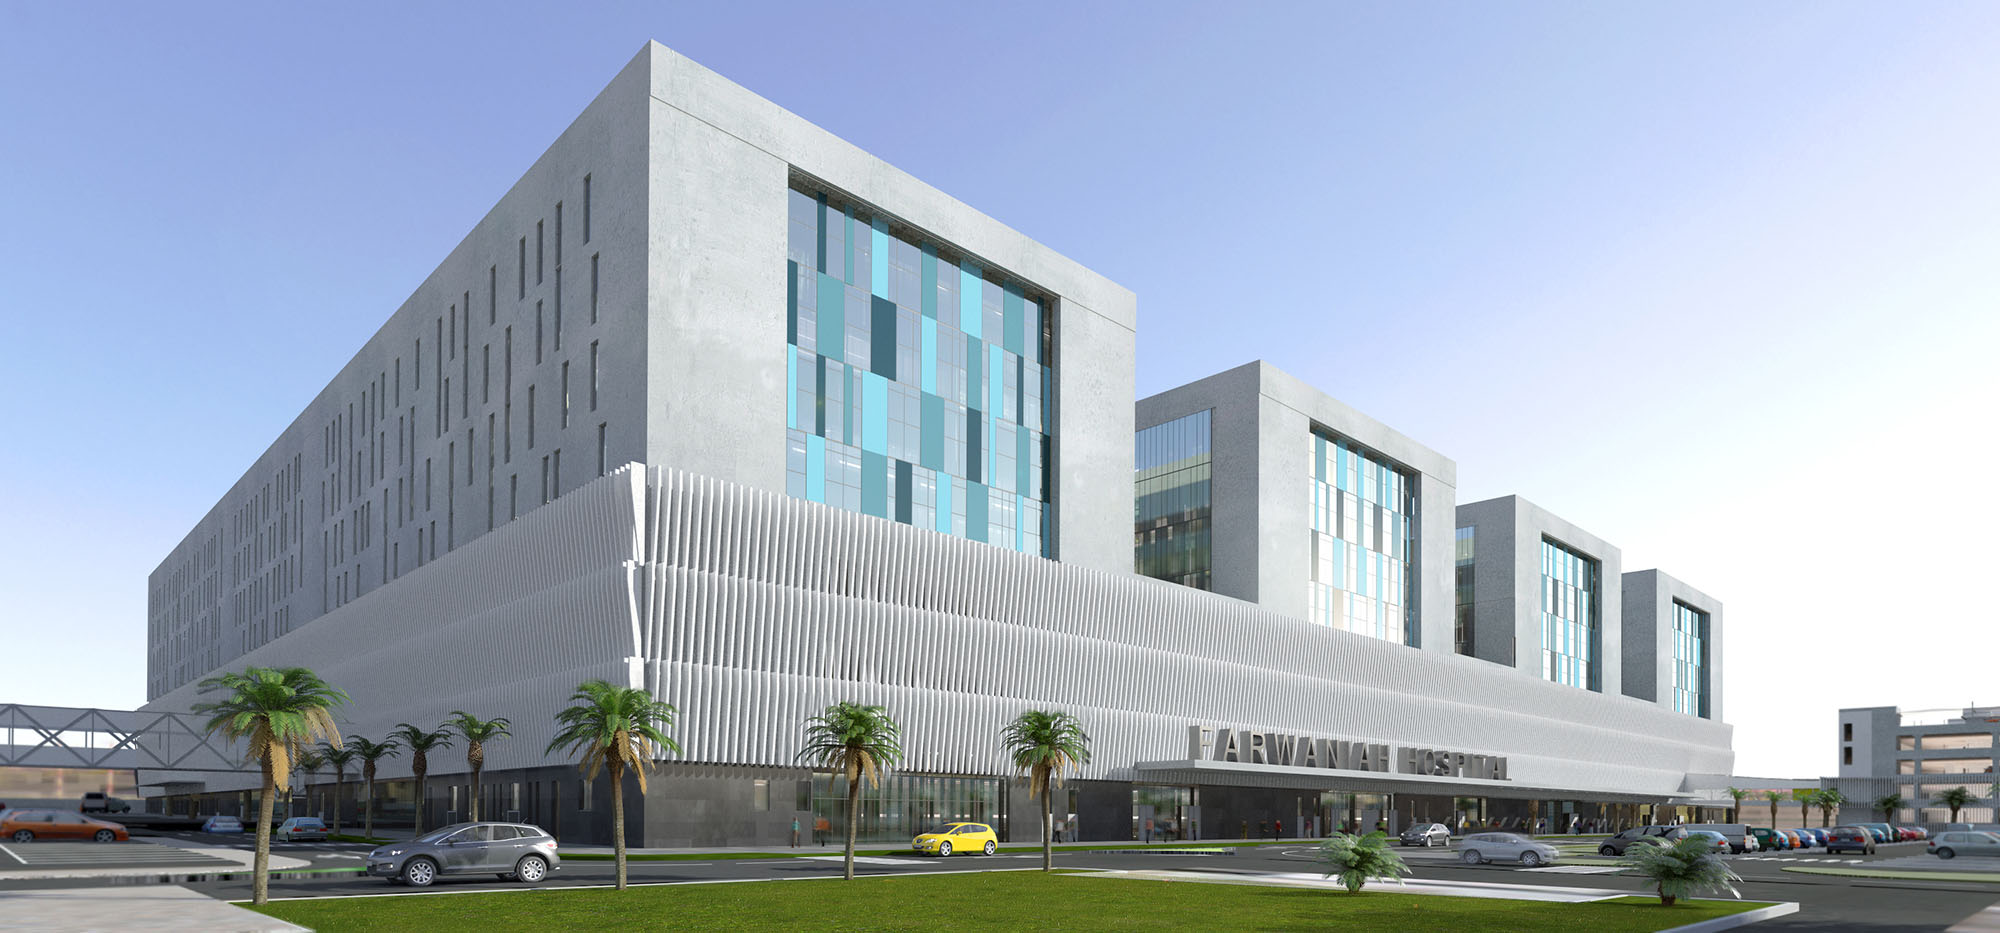 Farwaniya Hospital Expansion Project3